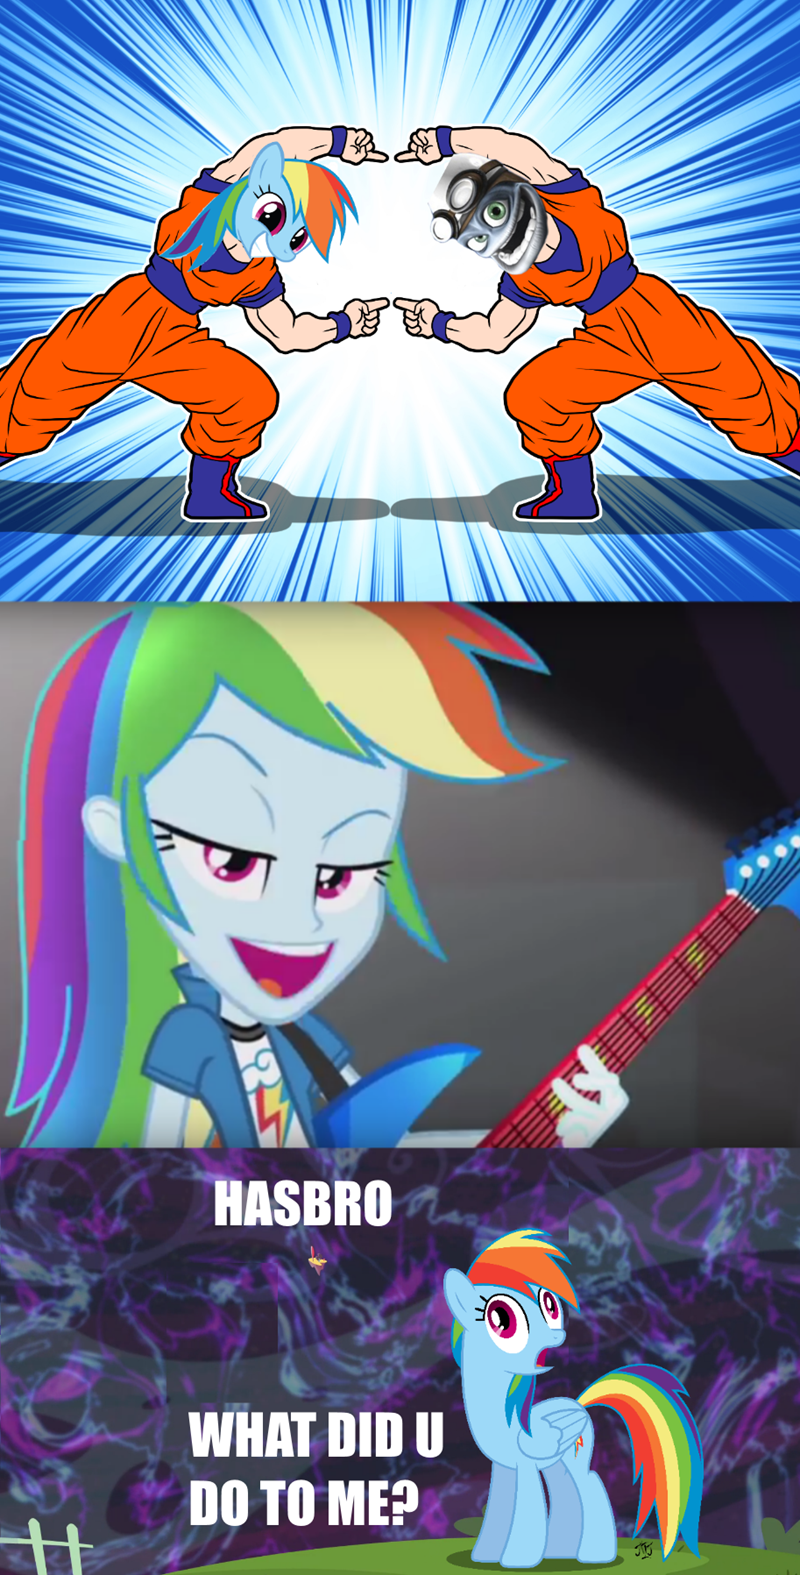 fusion Dragon Ball Z rainbow dash - 8558888192